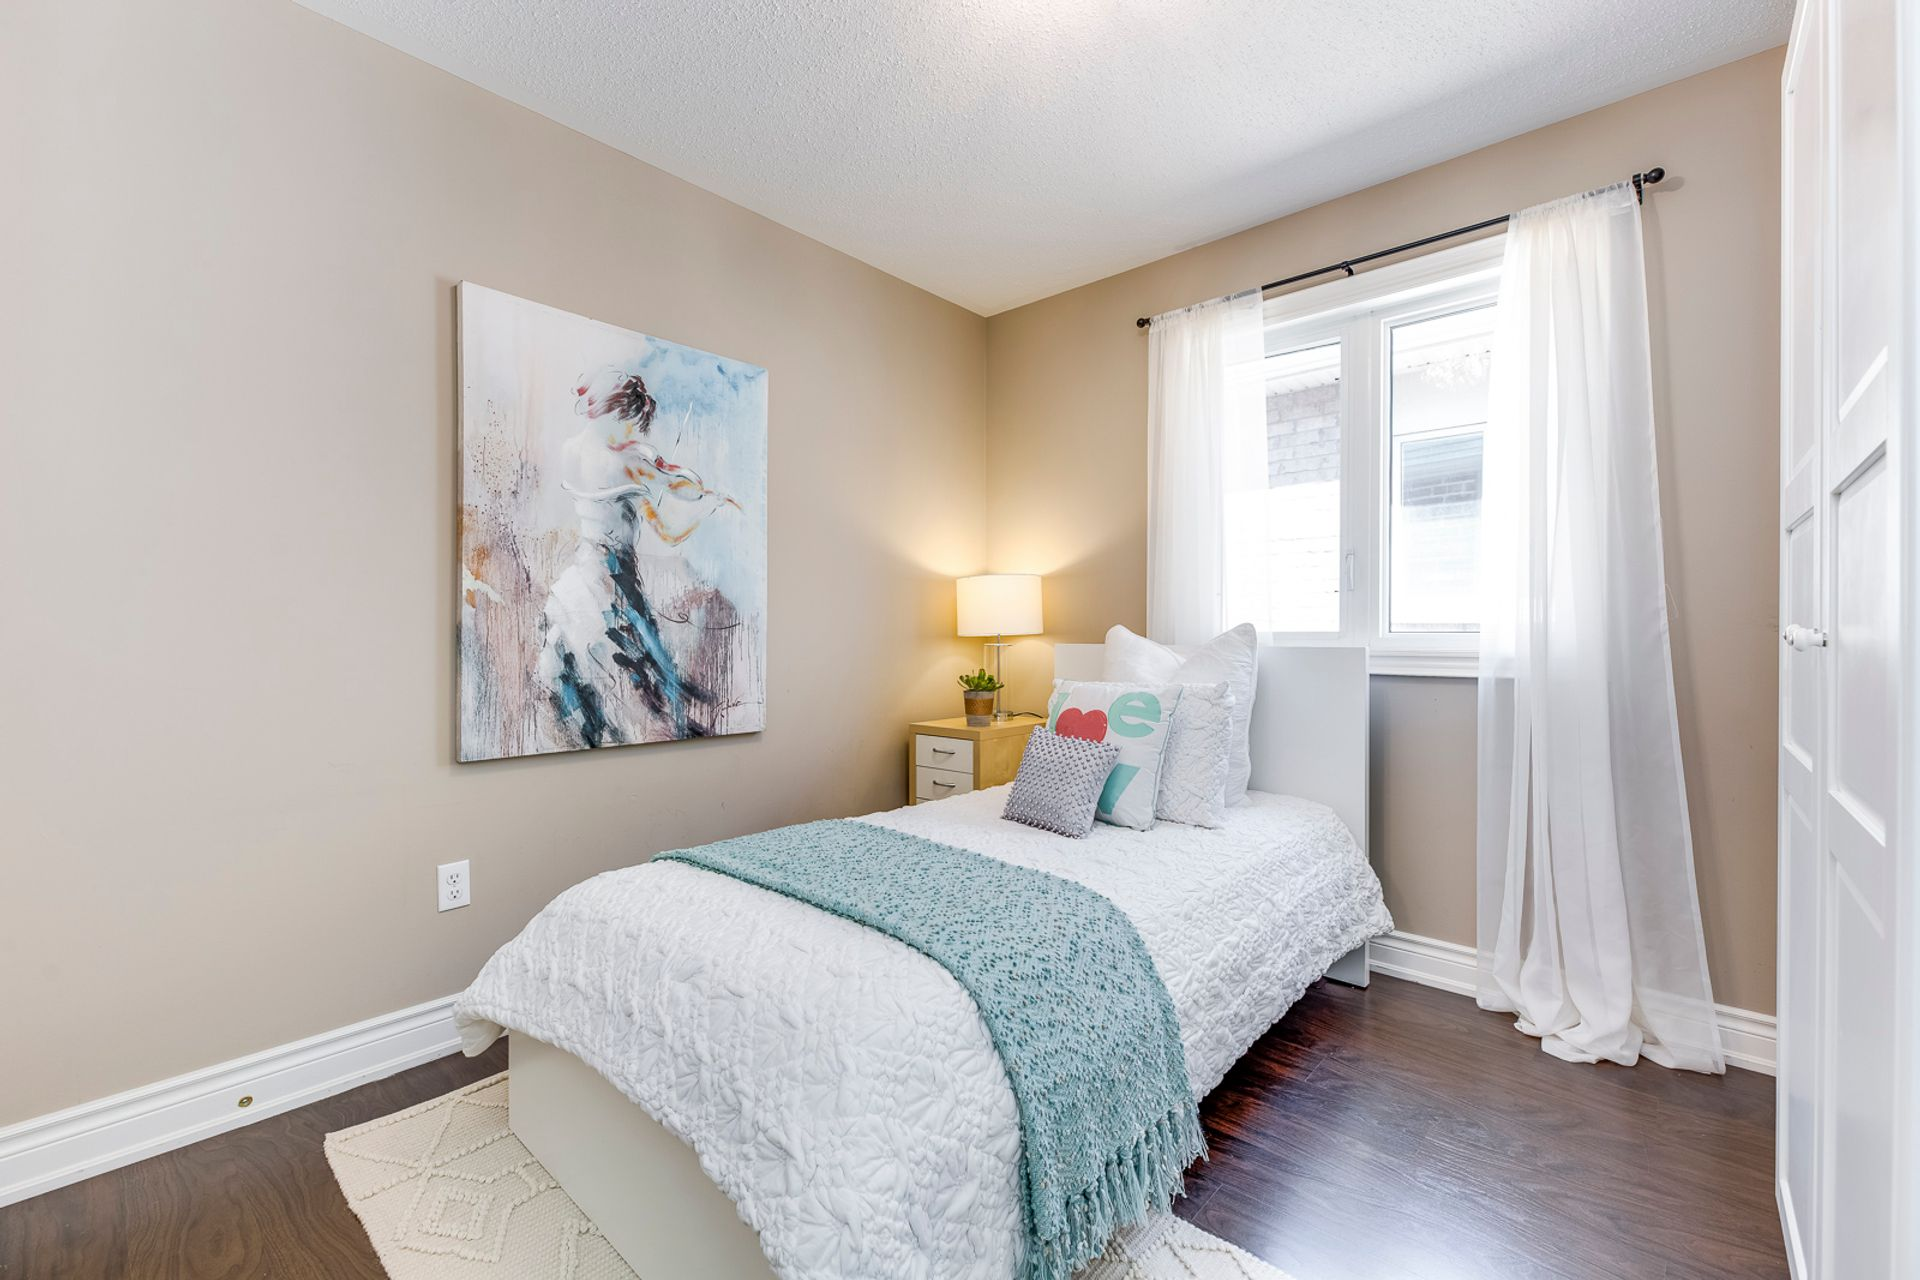 mls-50 at 5480 Meadowcrest Avenue, Churchill Meadows, Mississauga